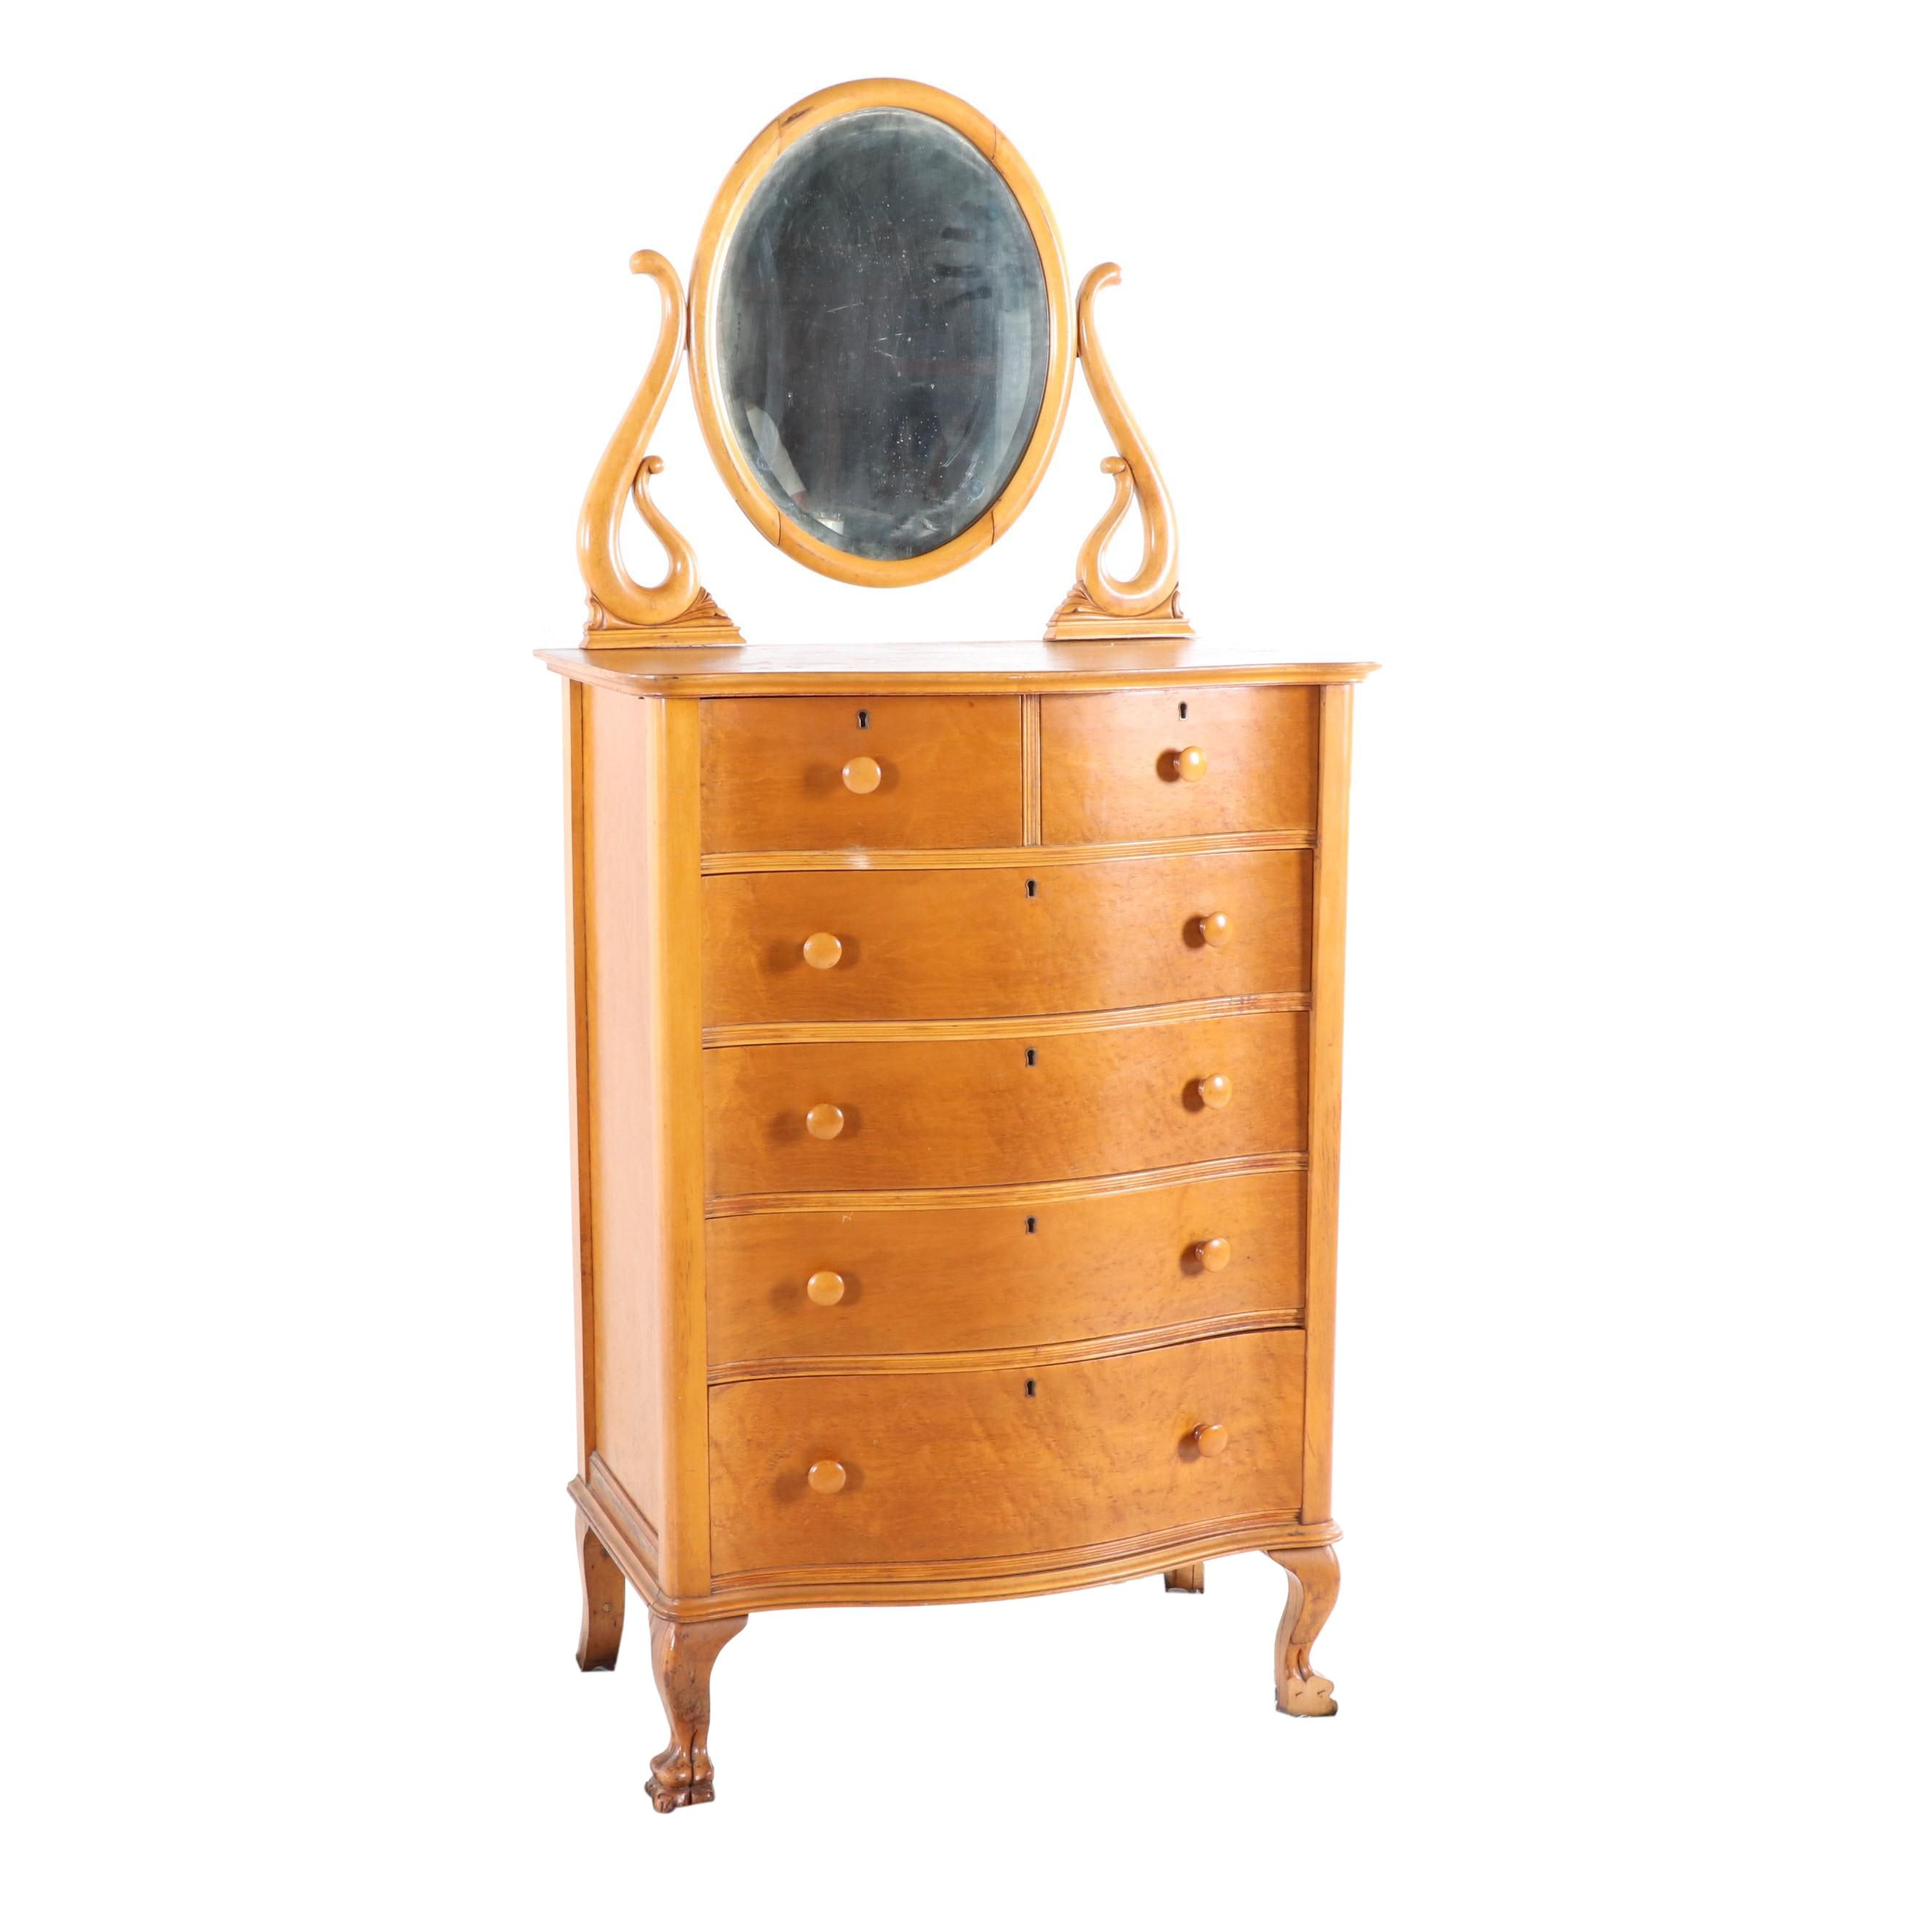 Colonial Revival Maple Mirrored Chest of Drawers, Early 20th Century